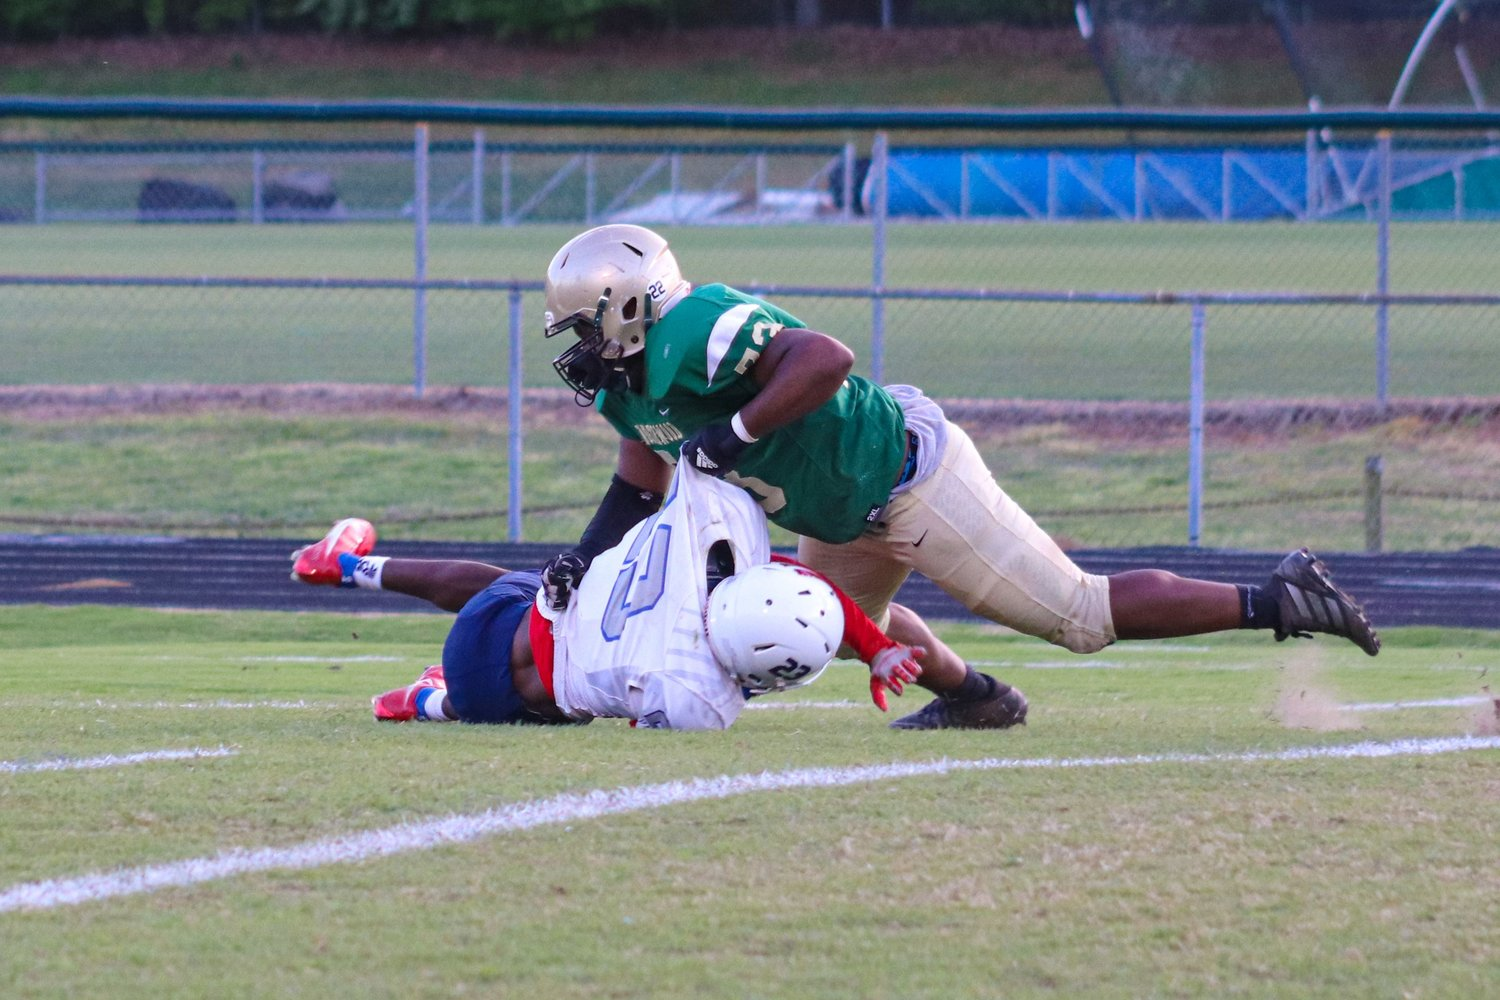 Northwood senior defensive tackle Christopher Polston (73) slams a West Carteret ball carrier to the ground in his team's 17-0 win over the Patriots on Friday.